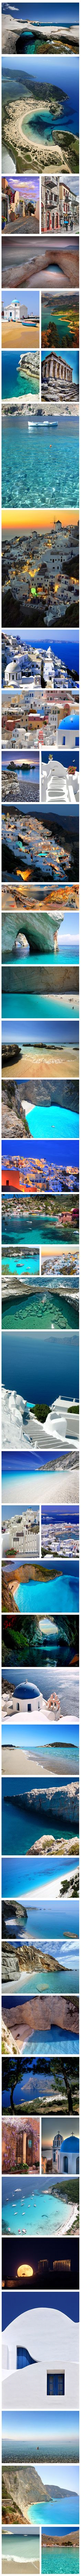 Amazing pics from Greece!